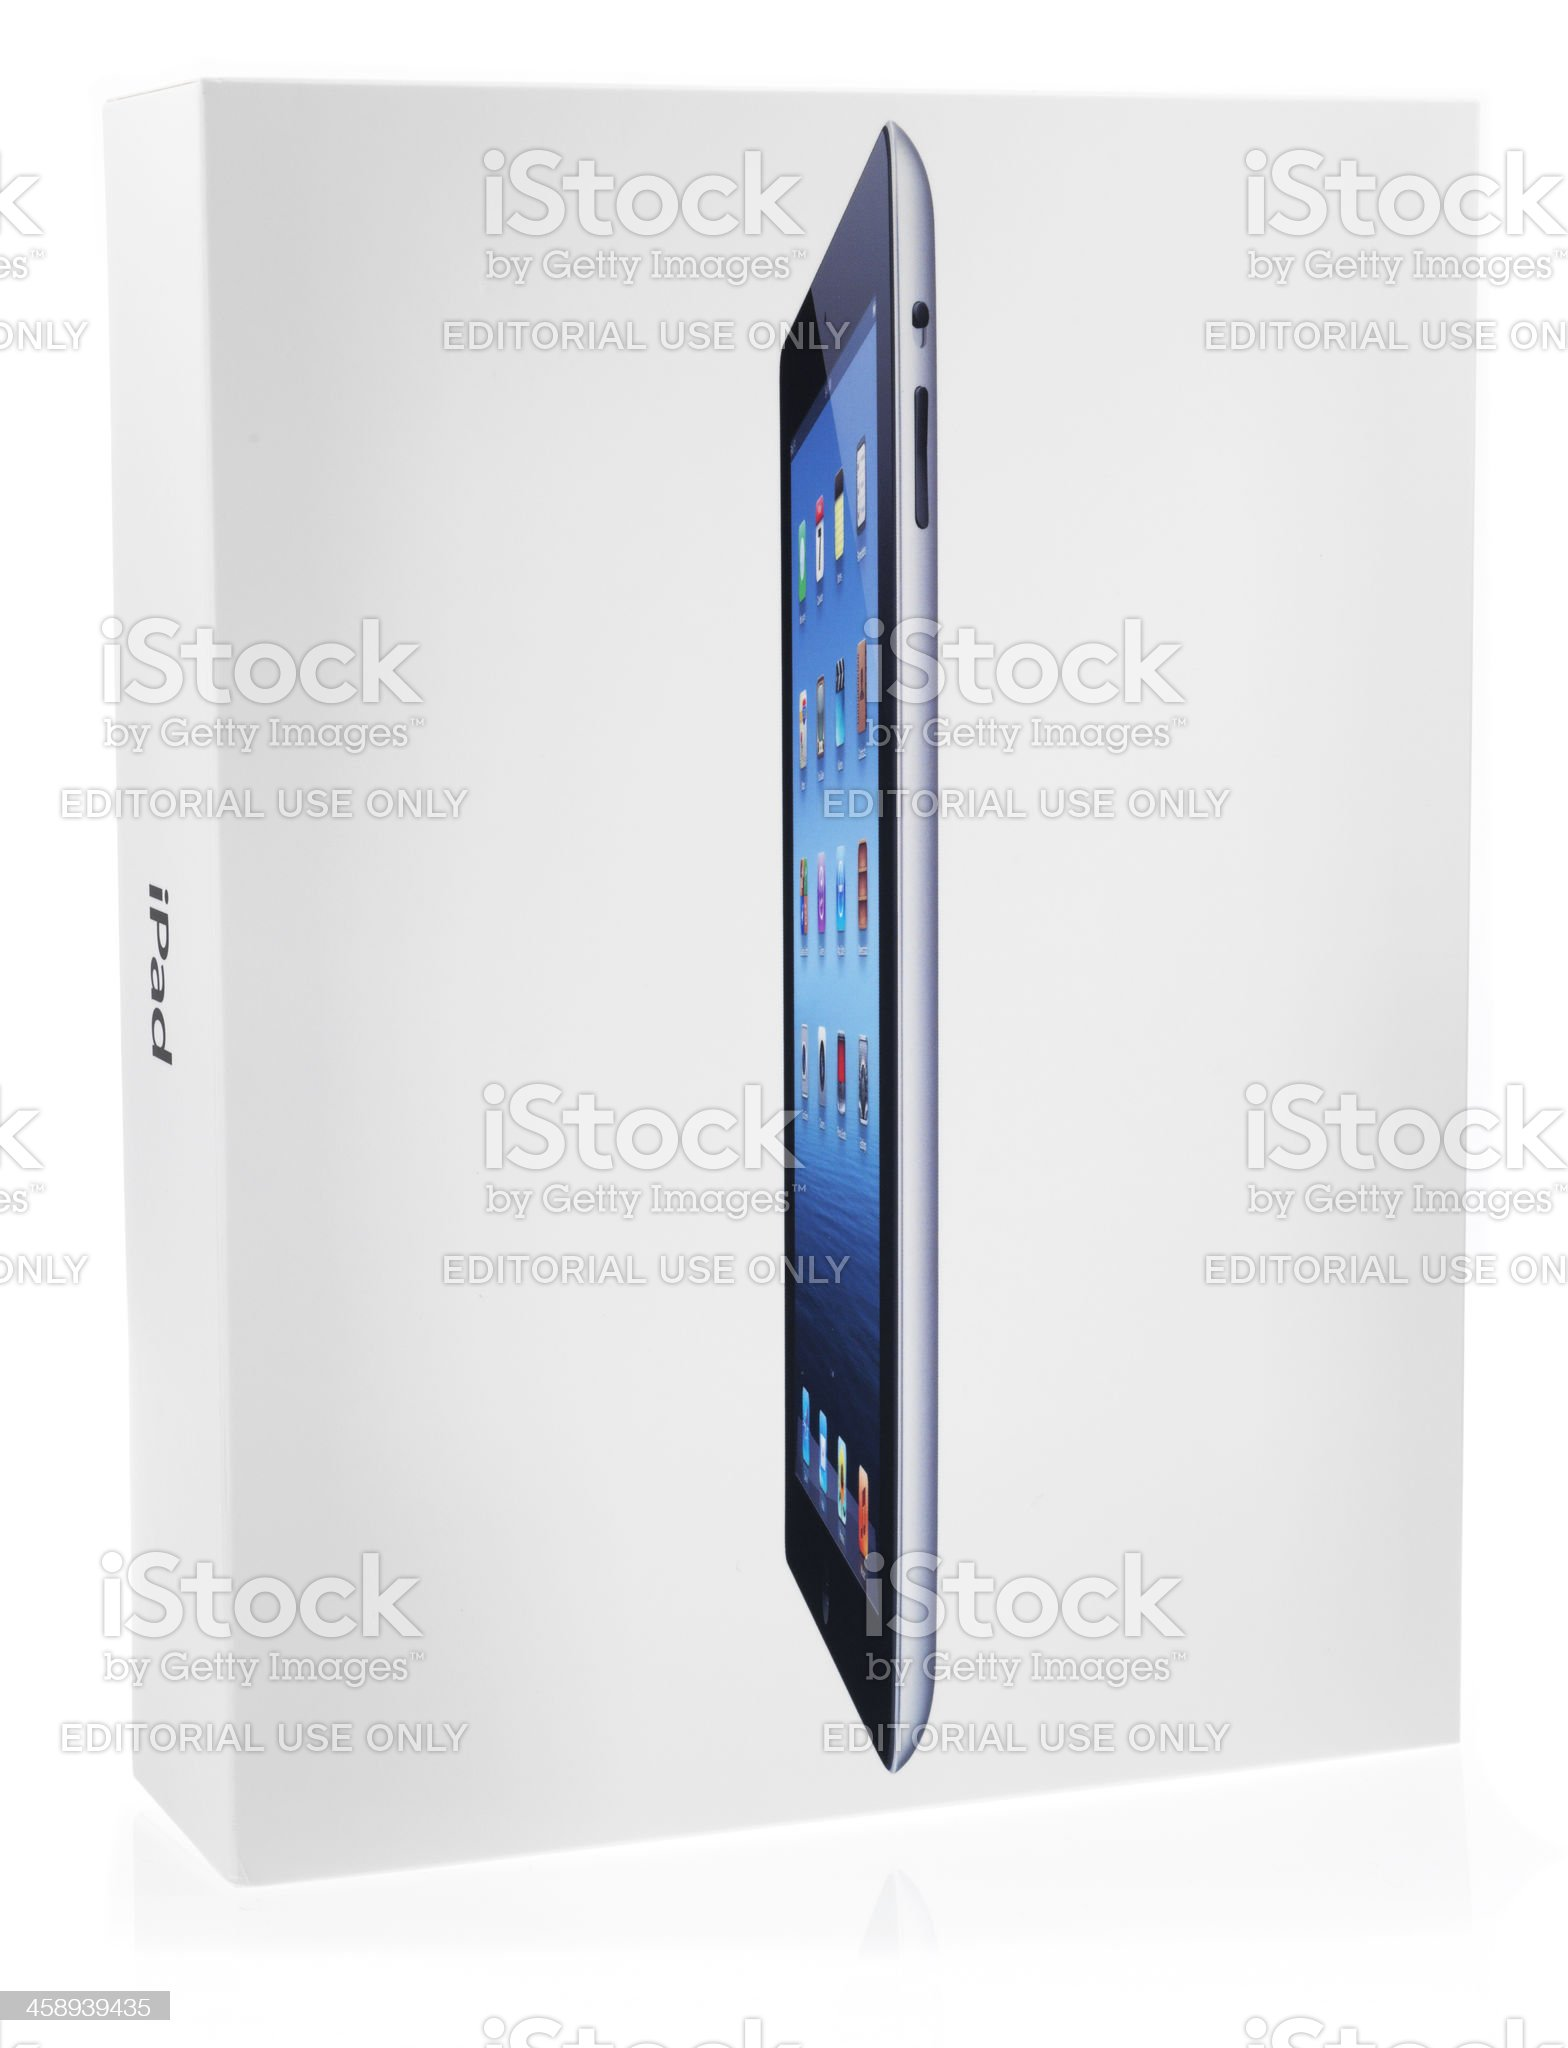 New iPad (3rd Generation) Packaging Box royalty-free stock photo